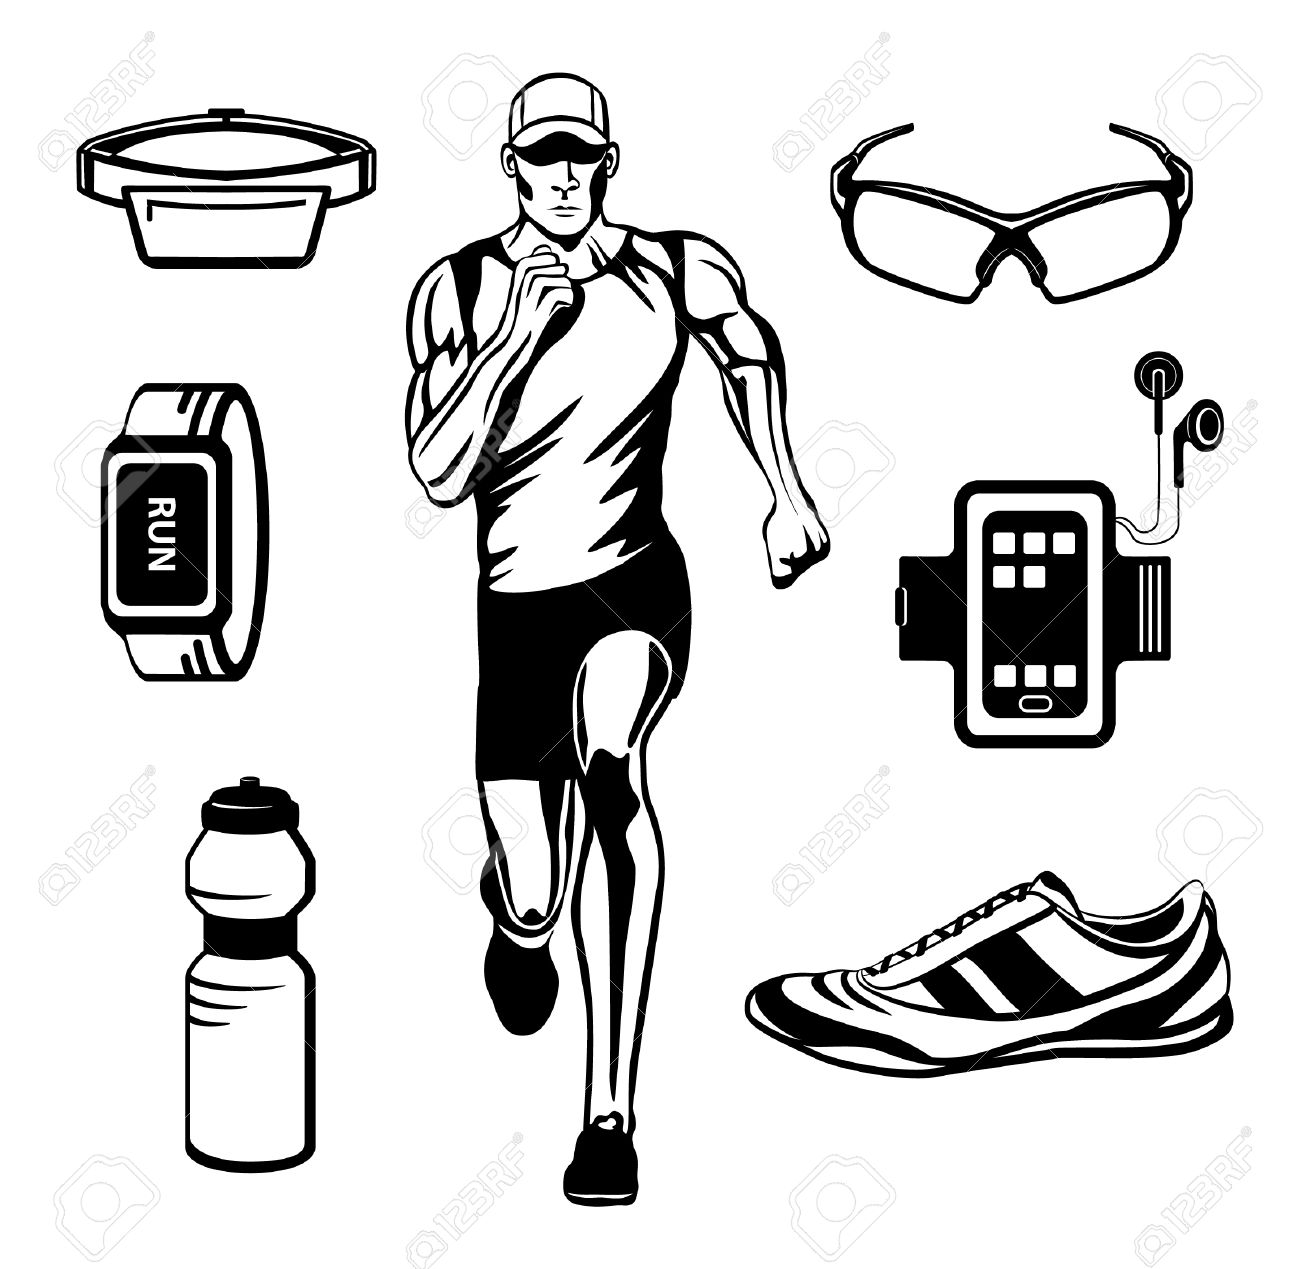 Running Man Vector Illustration Gear Accessories For Run Outdoor Cardio Workout